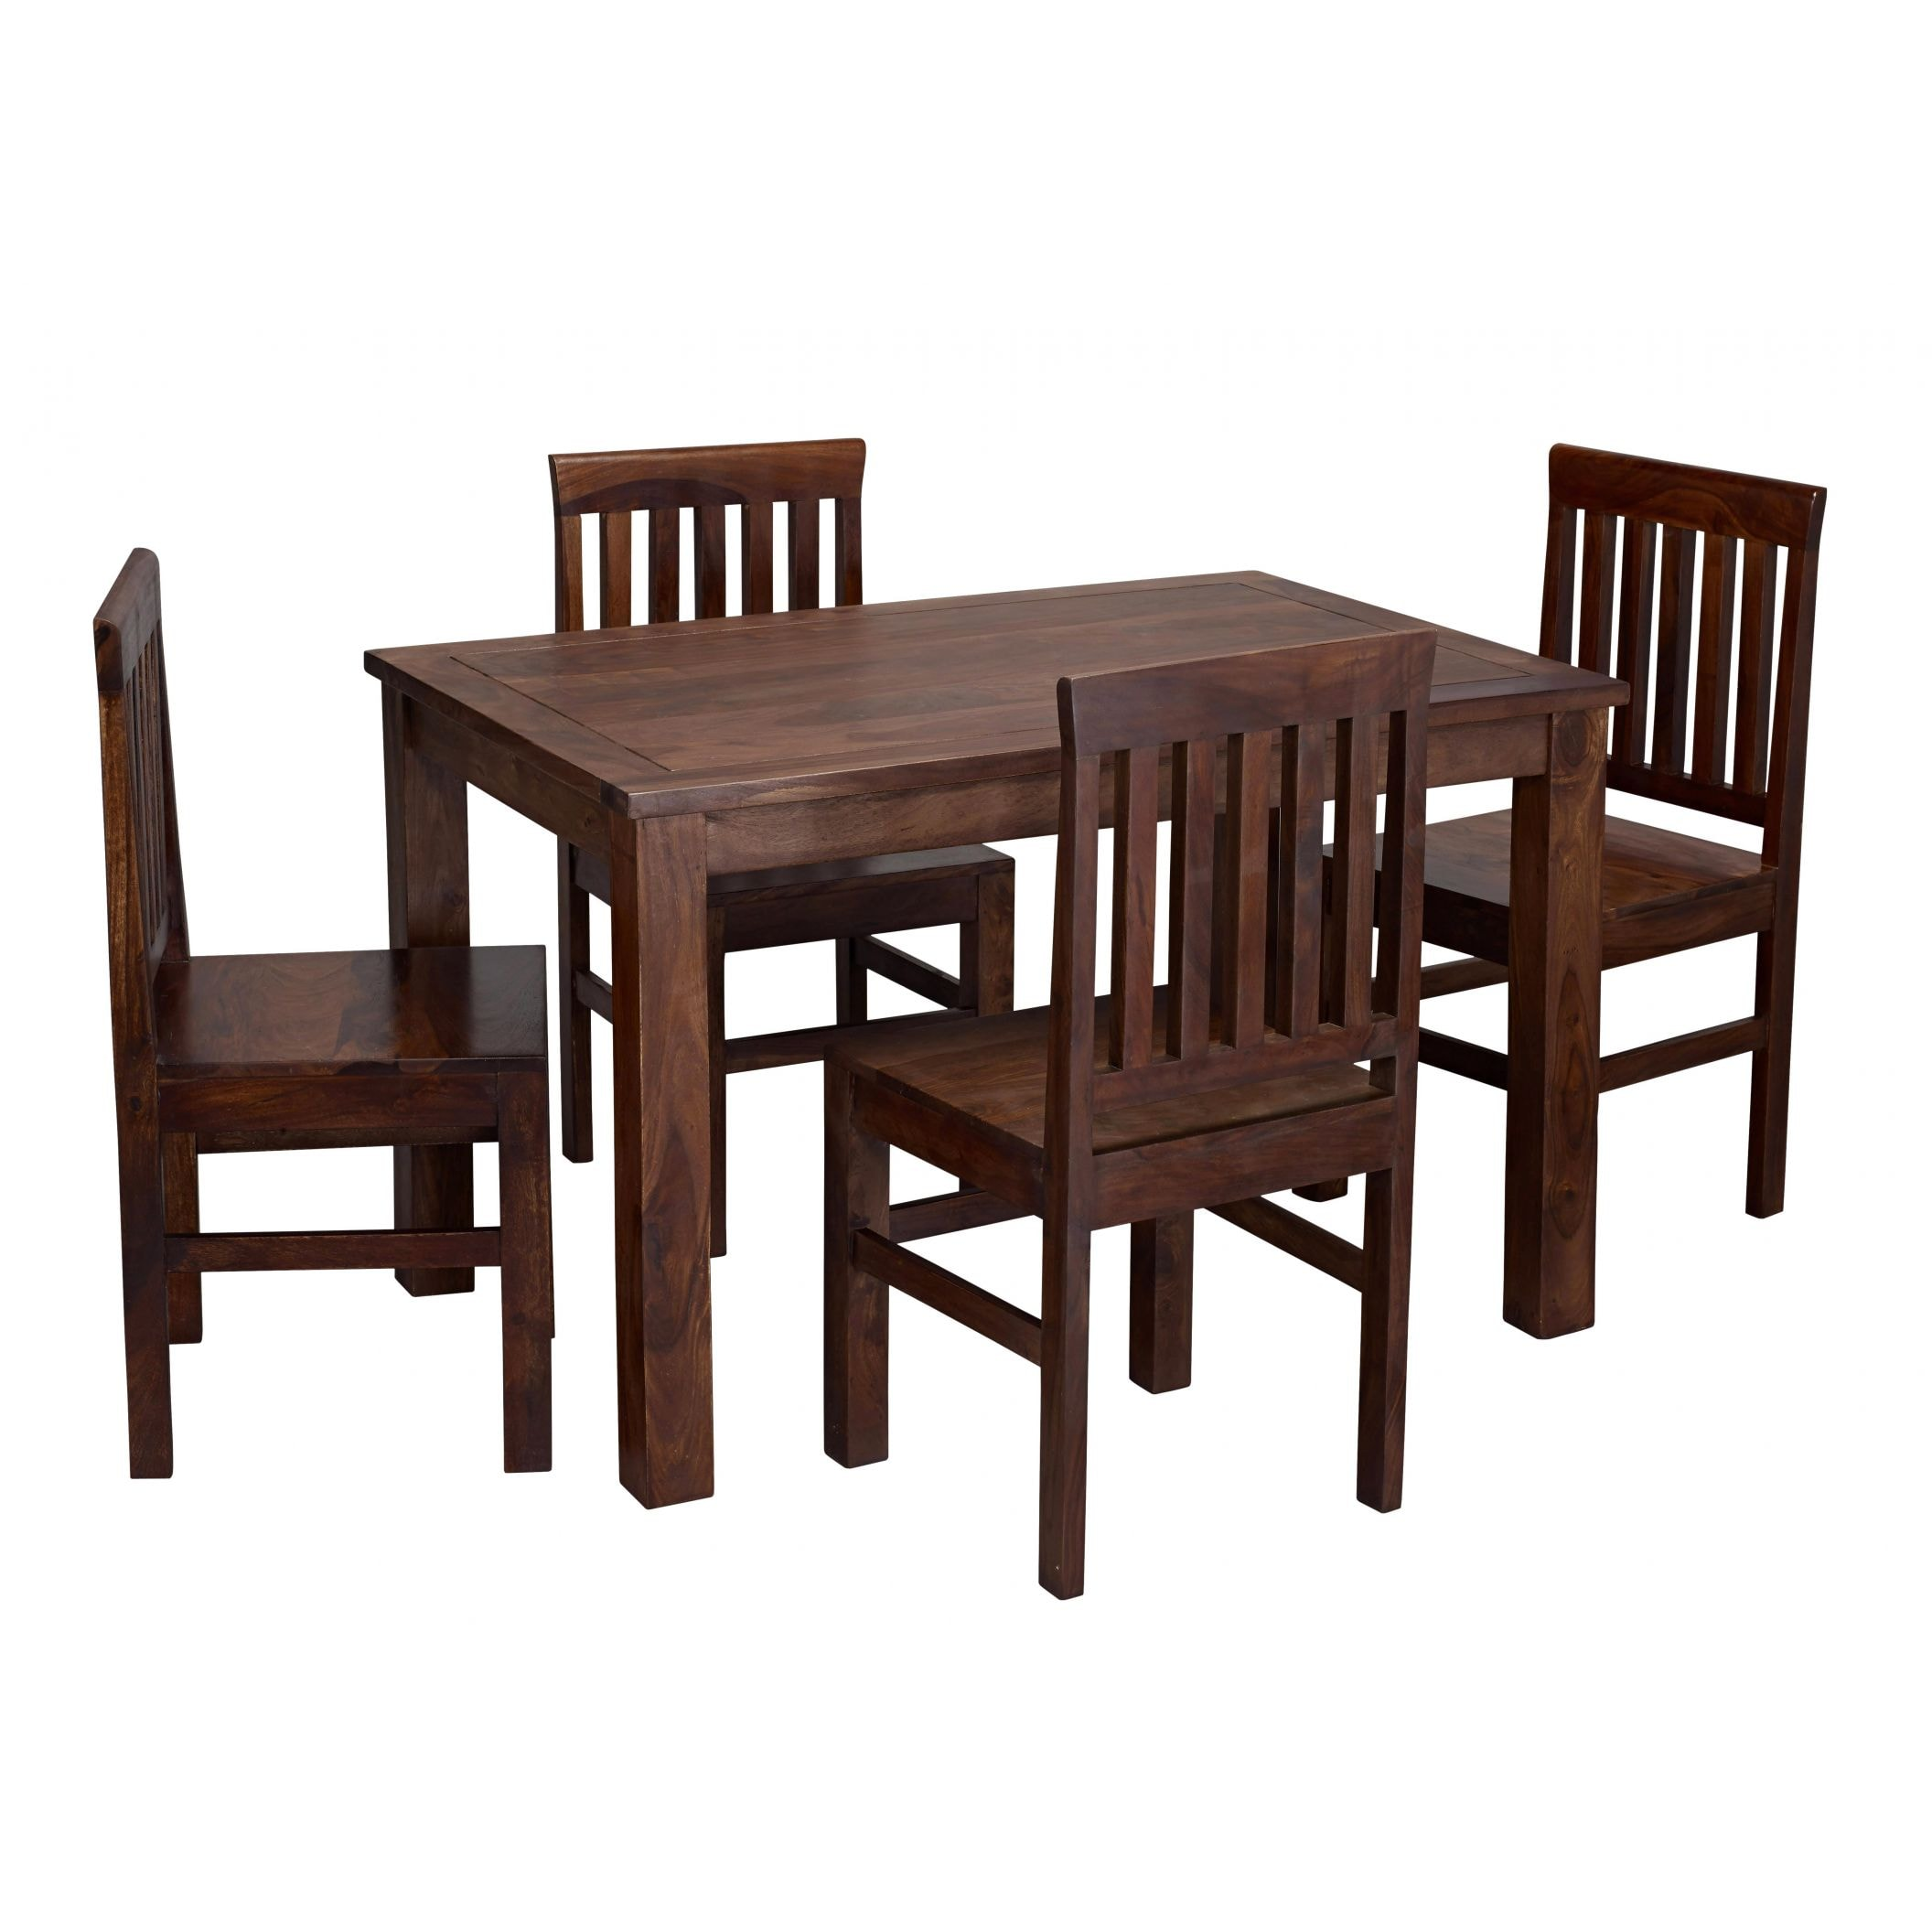 Jaipur dining table set modern furniture collection